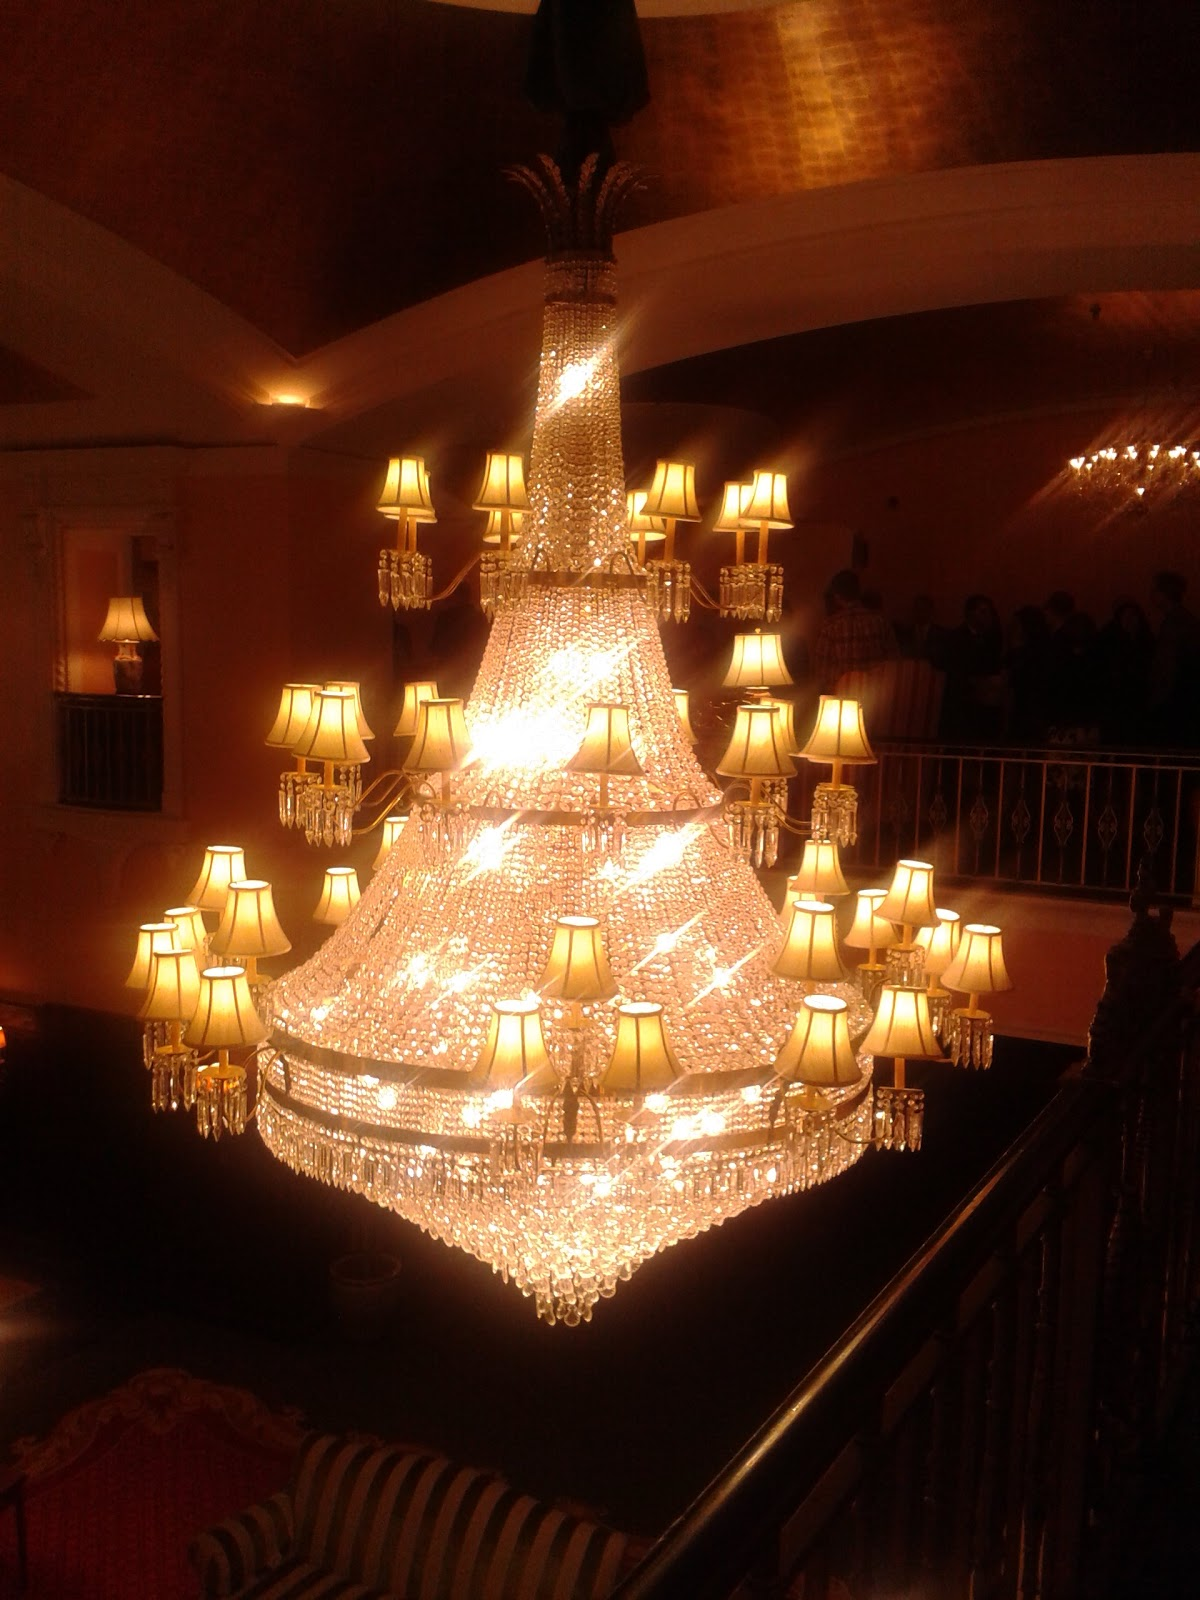 Eclectic and eccentric photo saturday do not swing on the chandelier photo saturday do not swing on the chandelier aloadofball Image collections